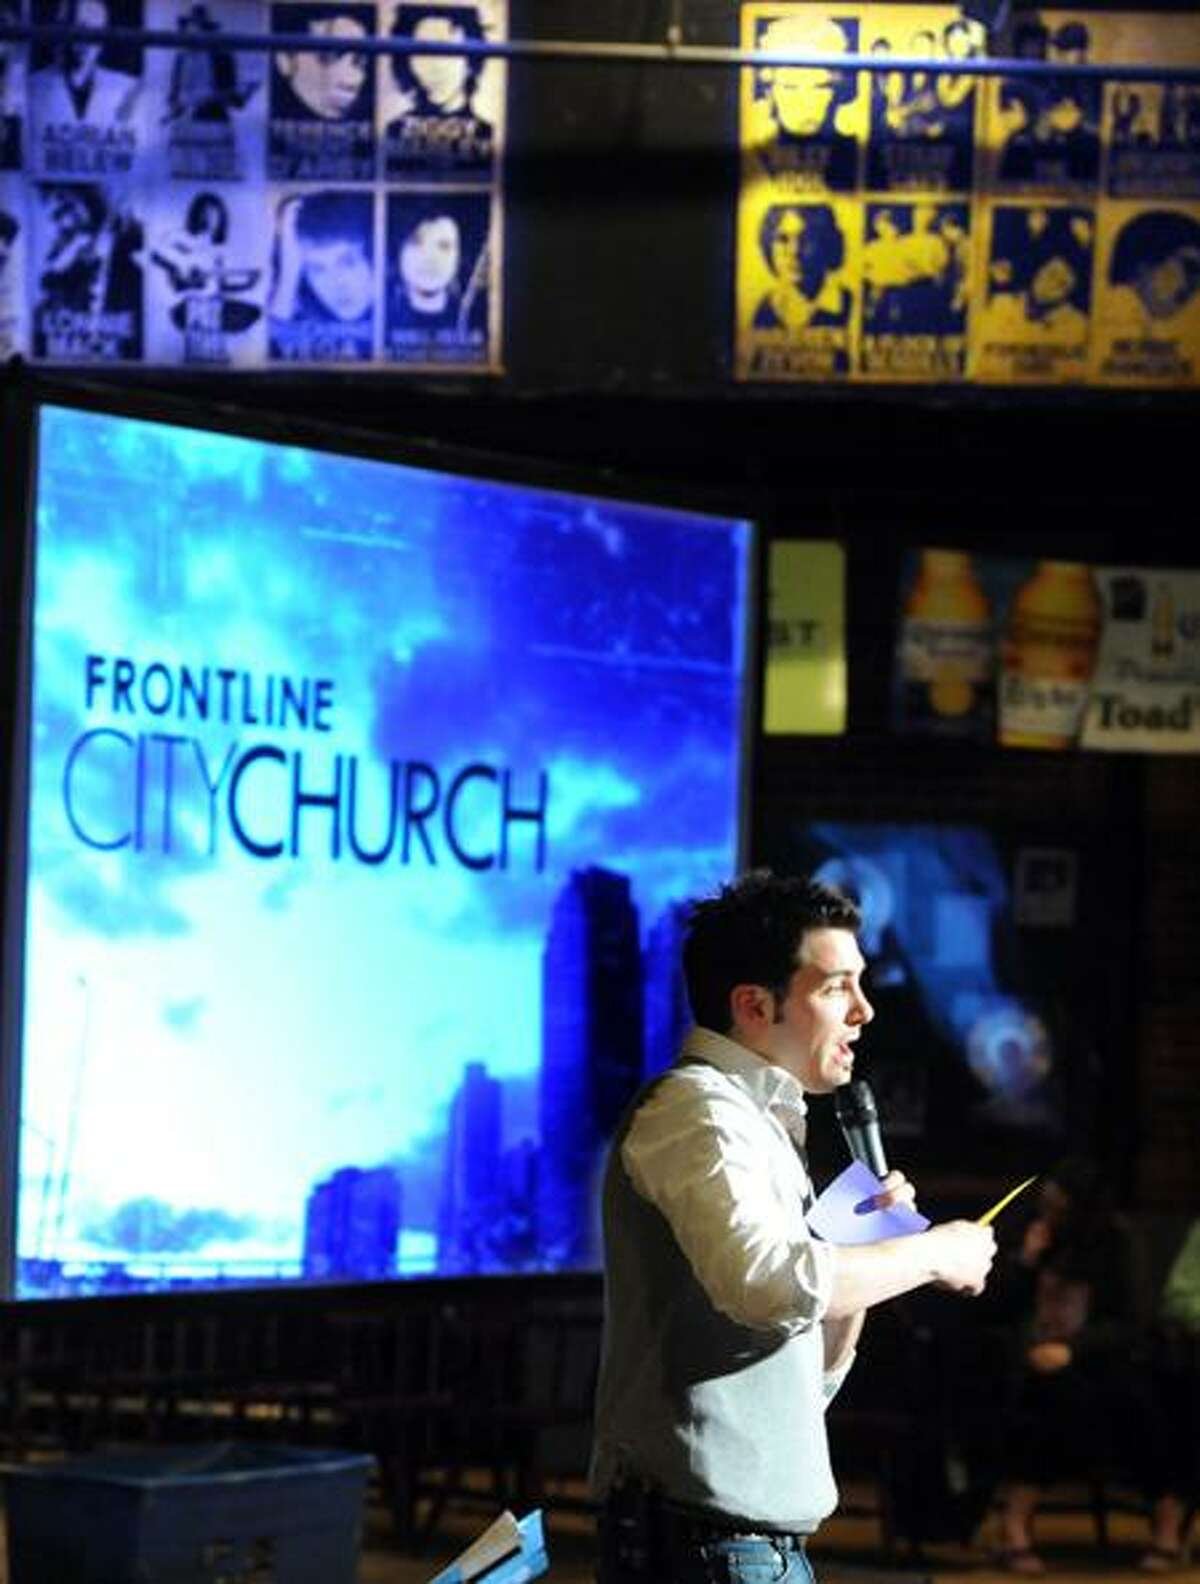 The inaugural gathering of the Frontline City Church at Toad's Place in New Haven on Easter. Lead Pastor Jason Kendrick of New Haven preaches under the watchful poster gazes of some of the performers who have played Toad's. Photo by Mara Lavitt/New Haven Register4/24/11